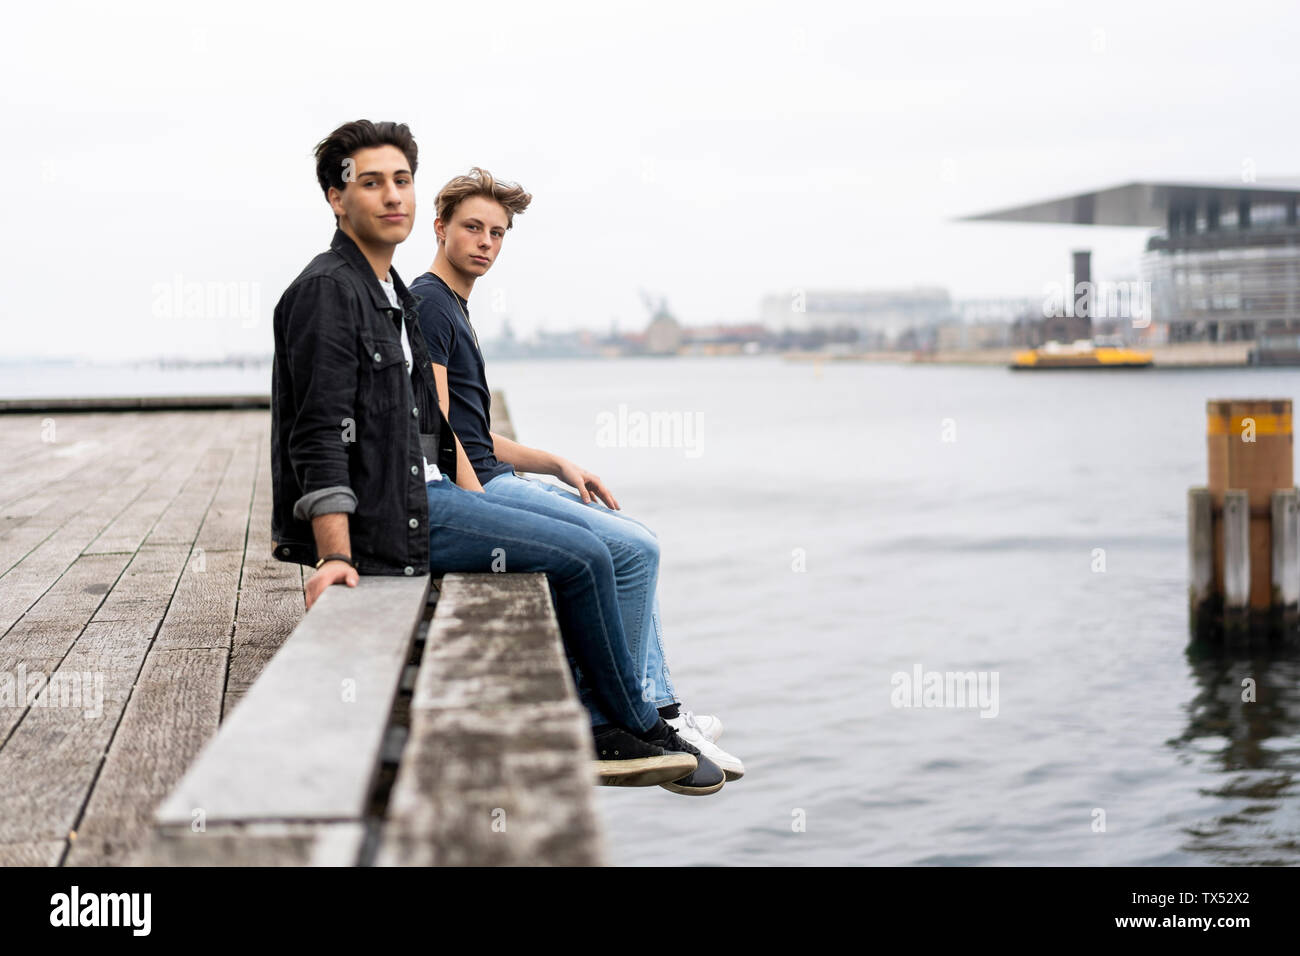 Denmark, Copenhagen, two young men sitting at the waterfront - Stock Image